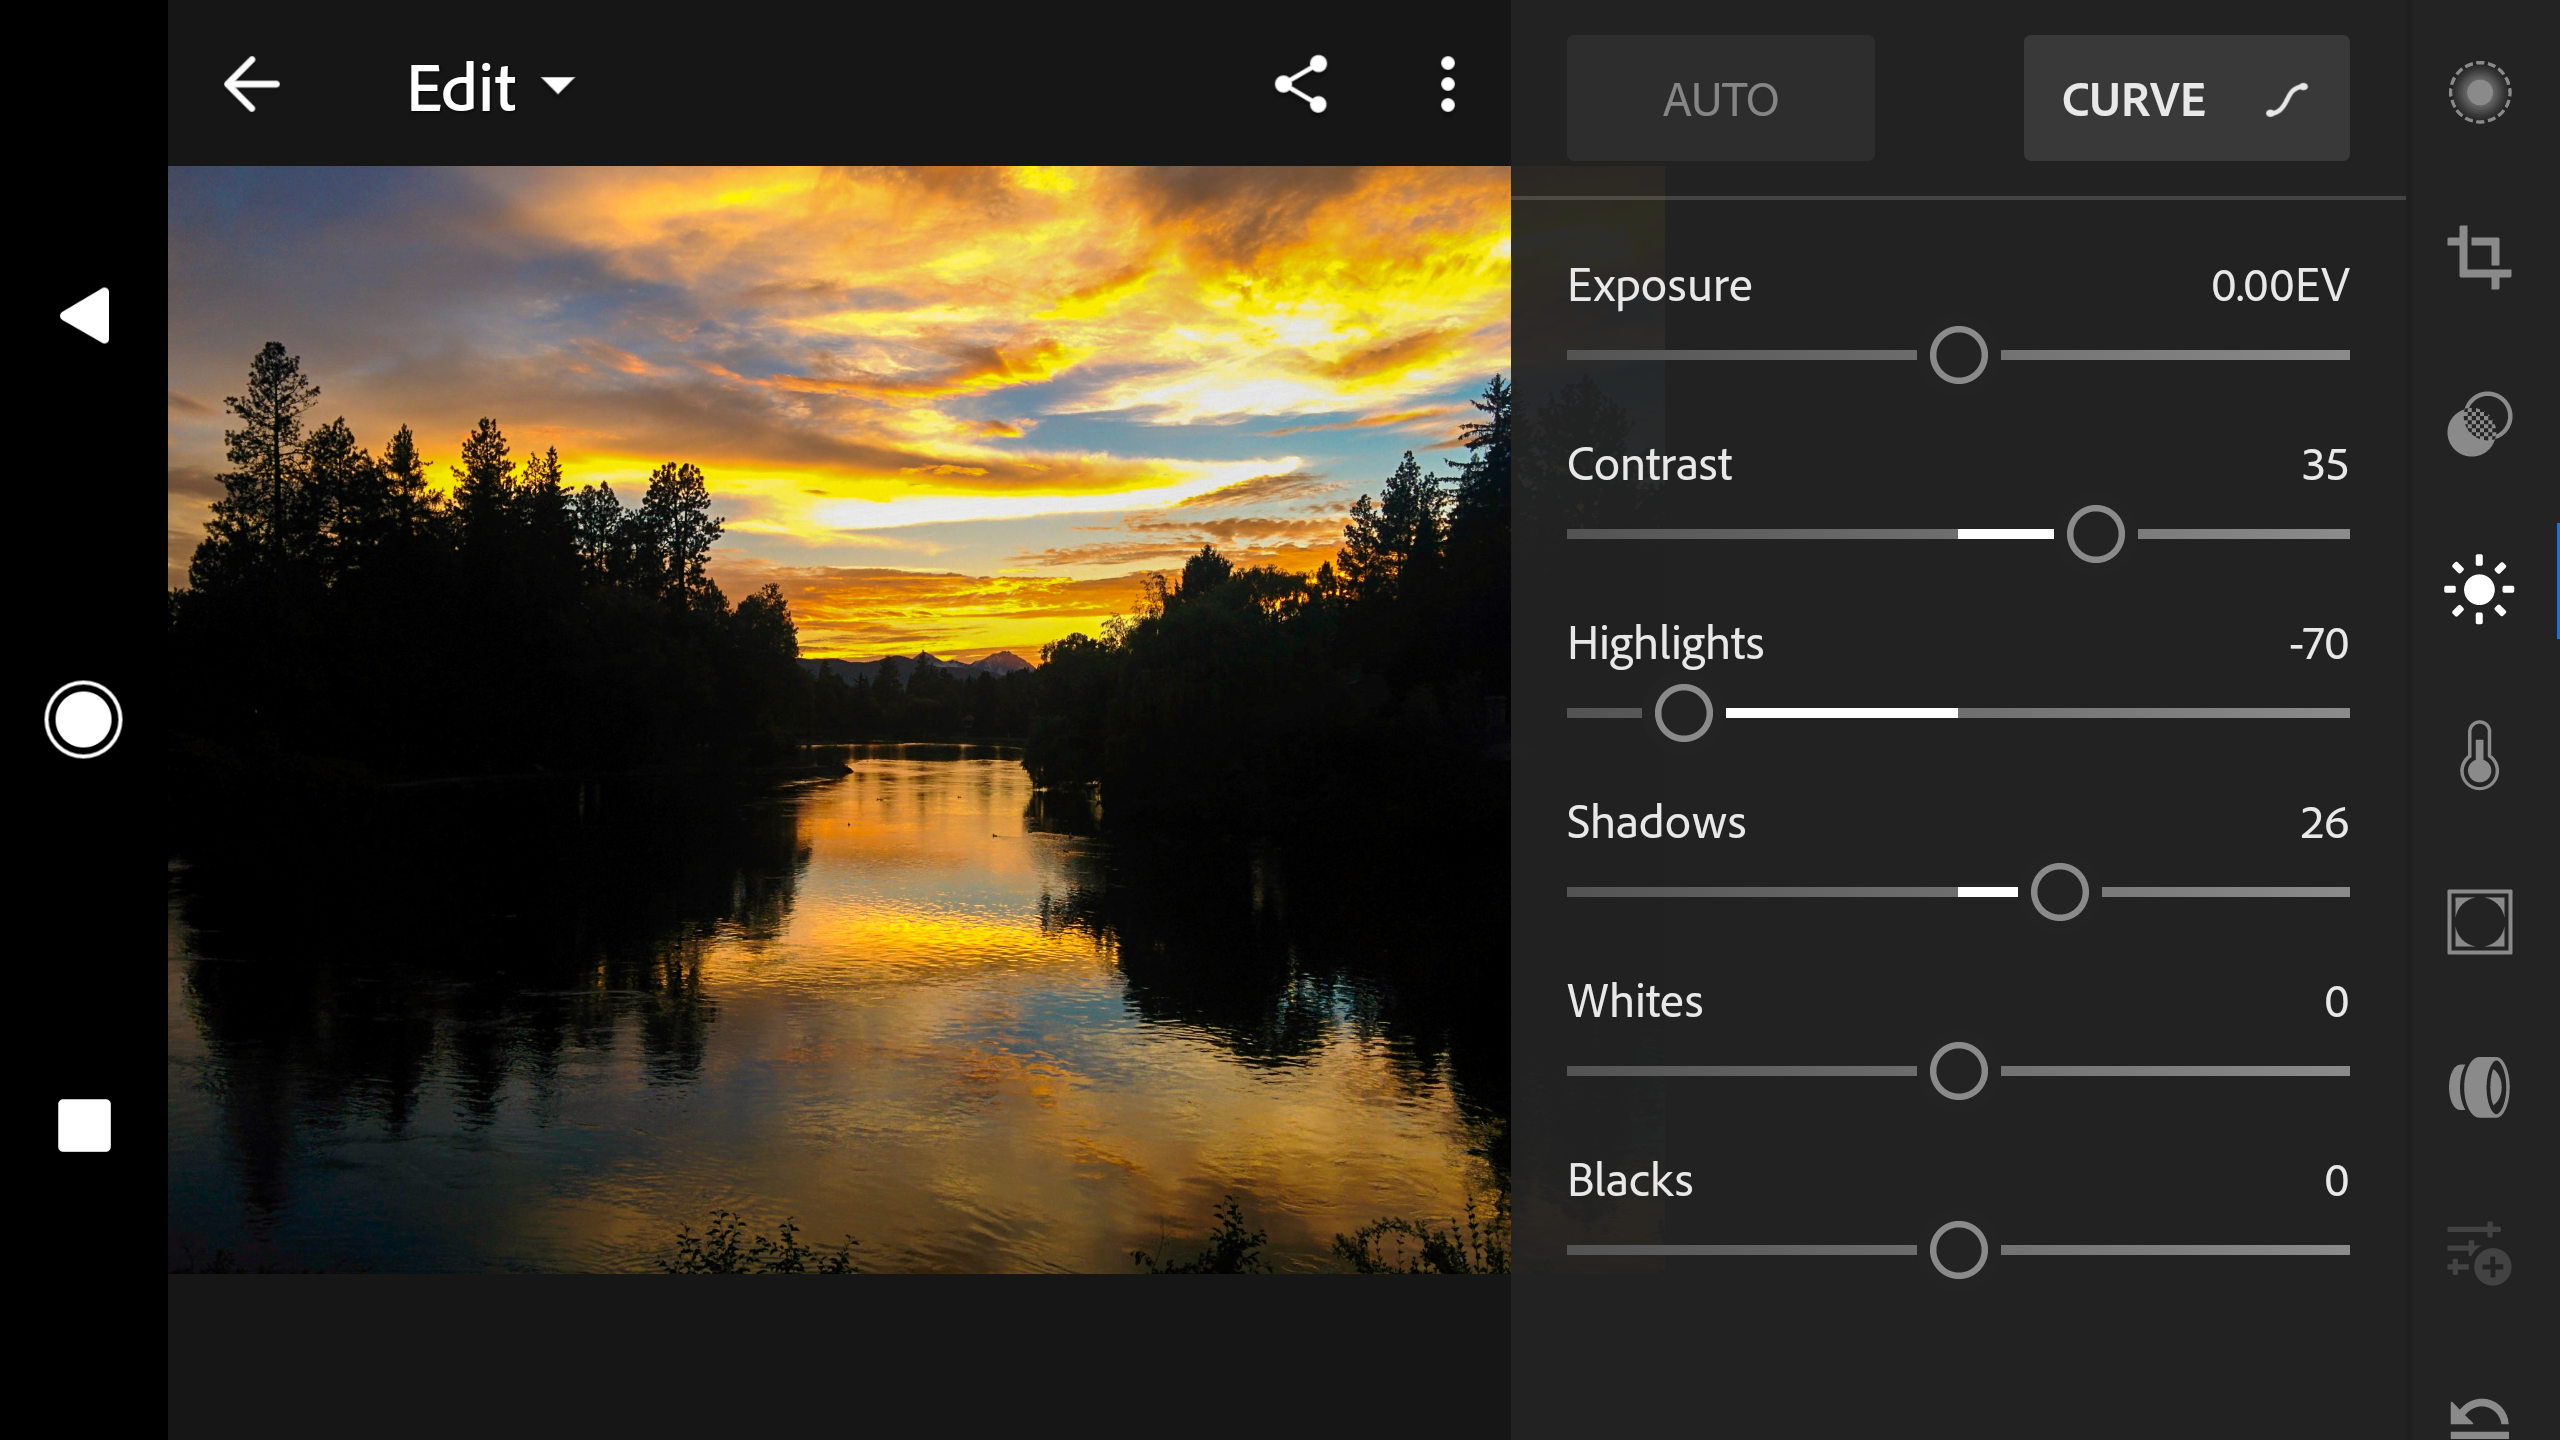 screenshot 20170718 102136 - Adobe Launches Updated Lightroom for Android